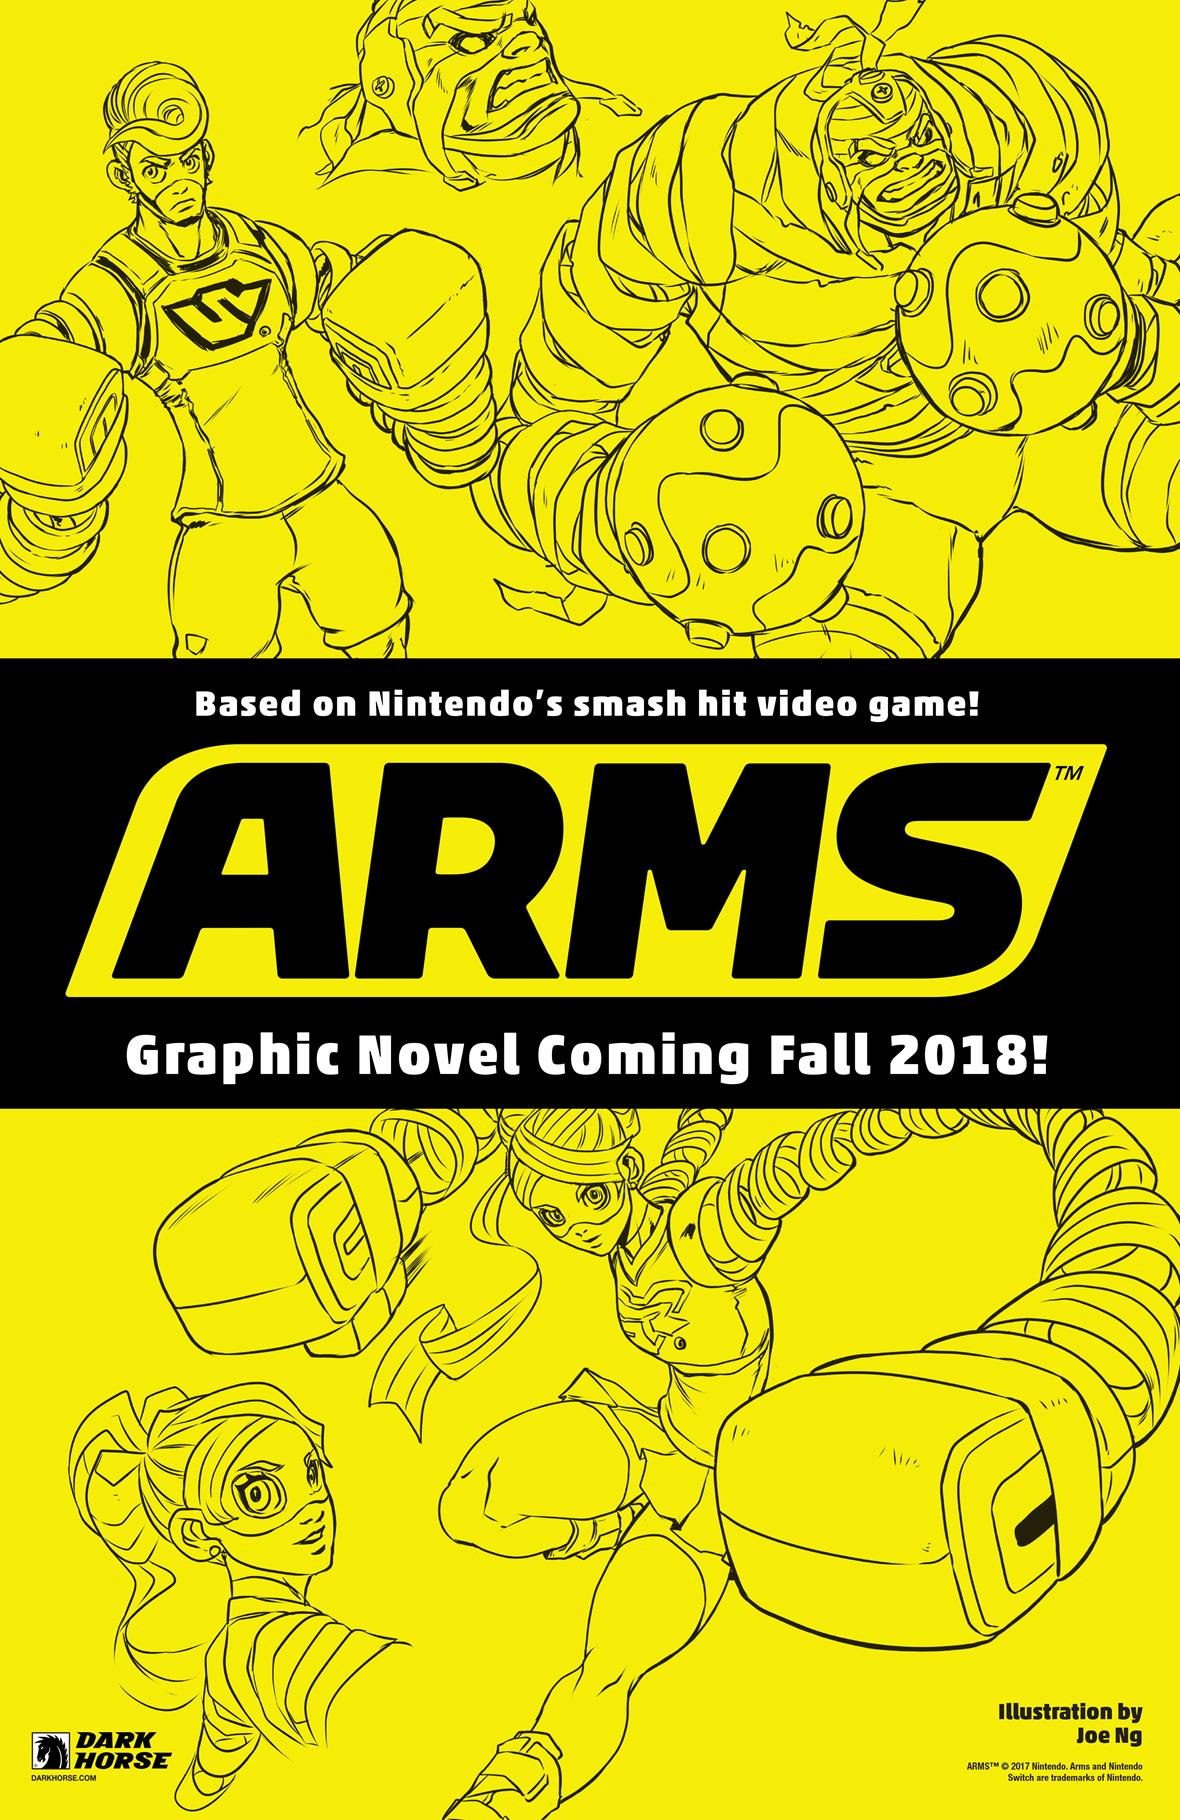 Arms graphic novel cover